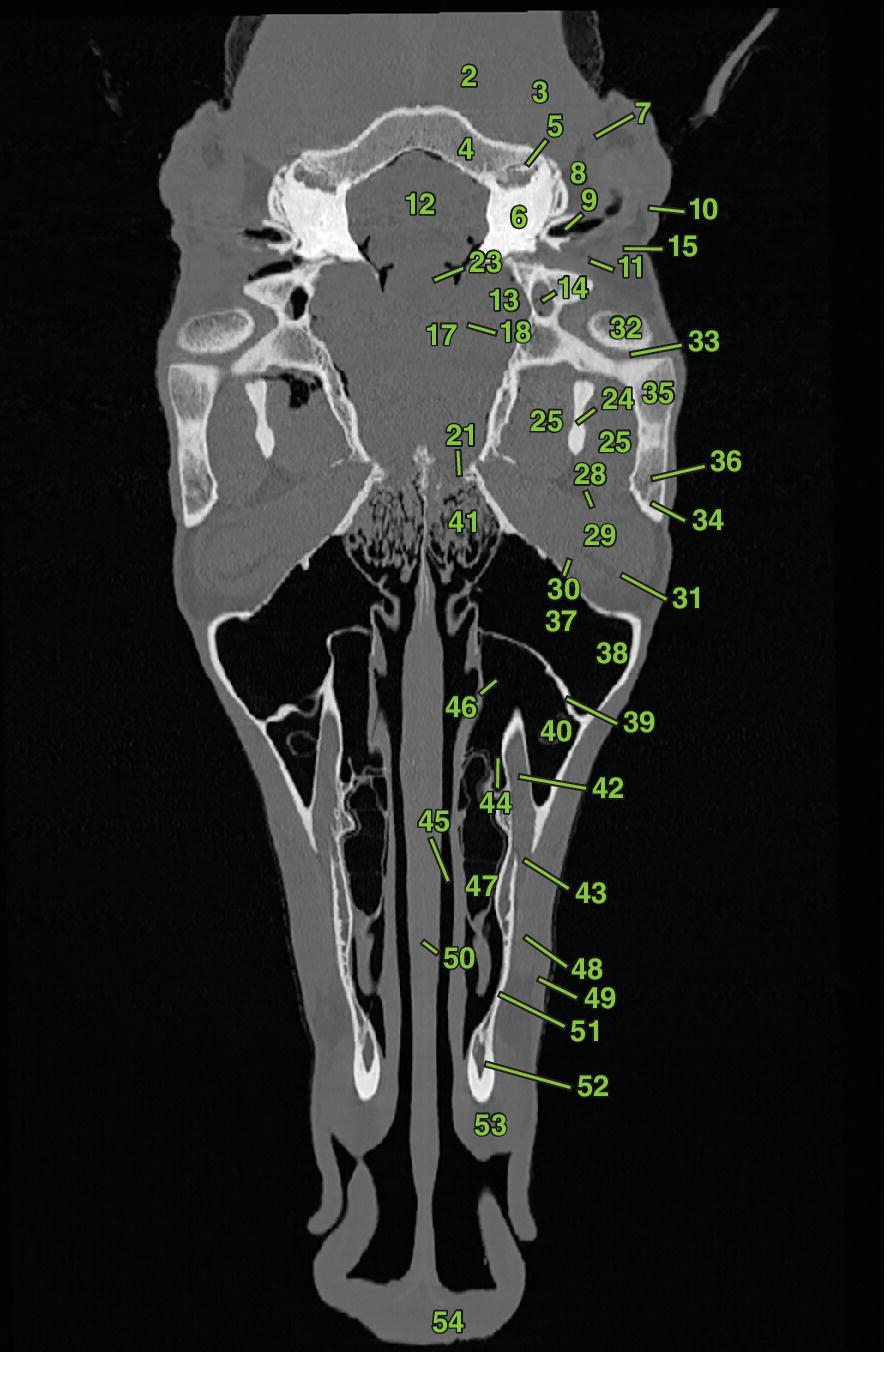 Photo displaying dorsal section 1 of an equine head depicting the bones of the head, nasal and sinus structures, ophthalmic structures, auricular structures, brain and nervous system, vascular anatomy, etc.